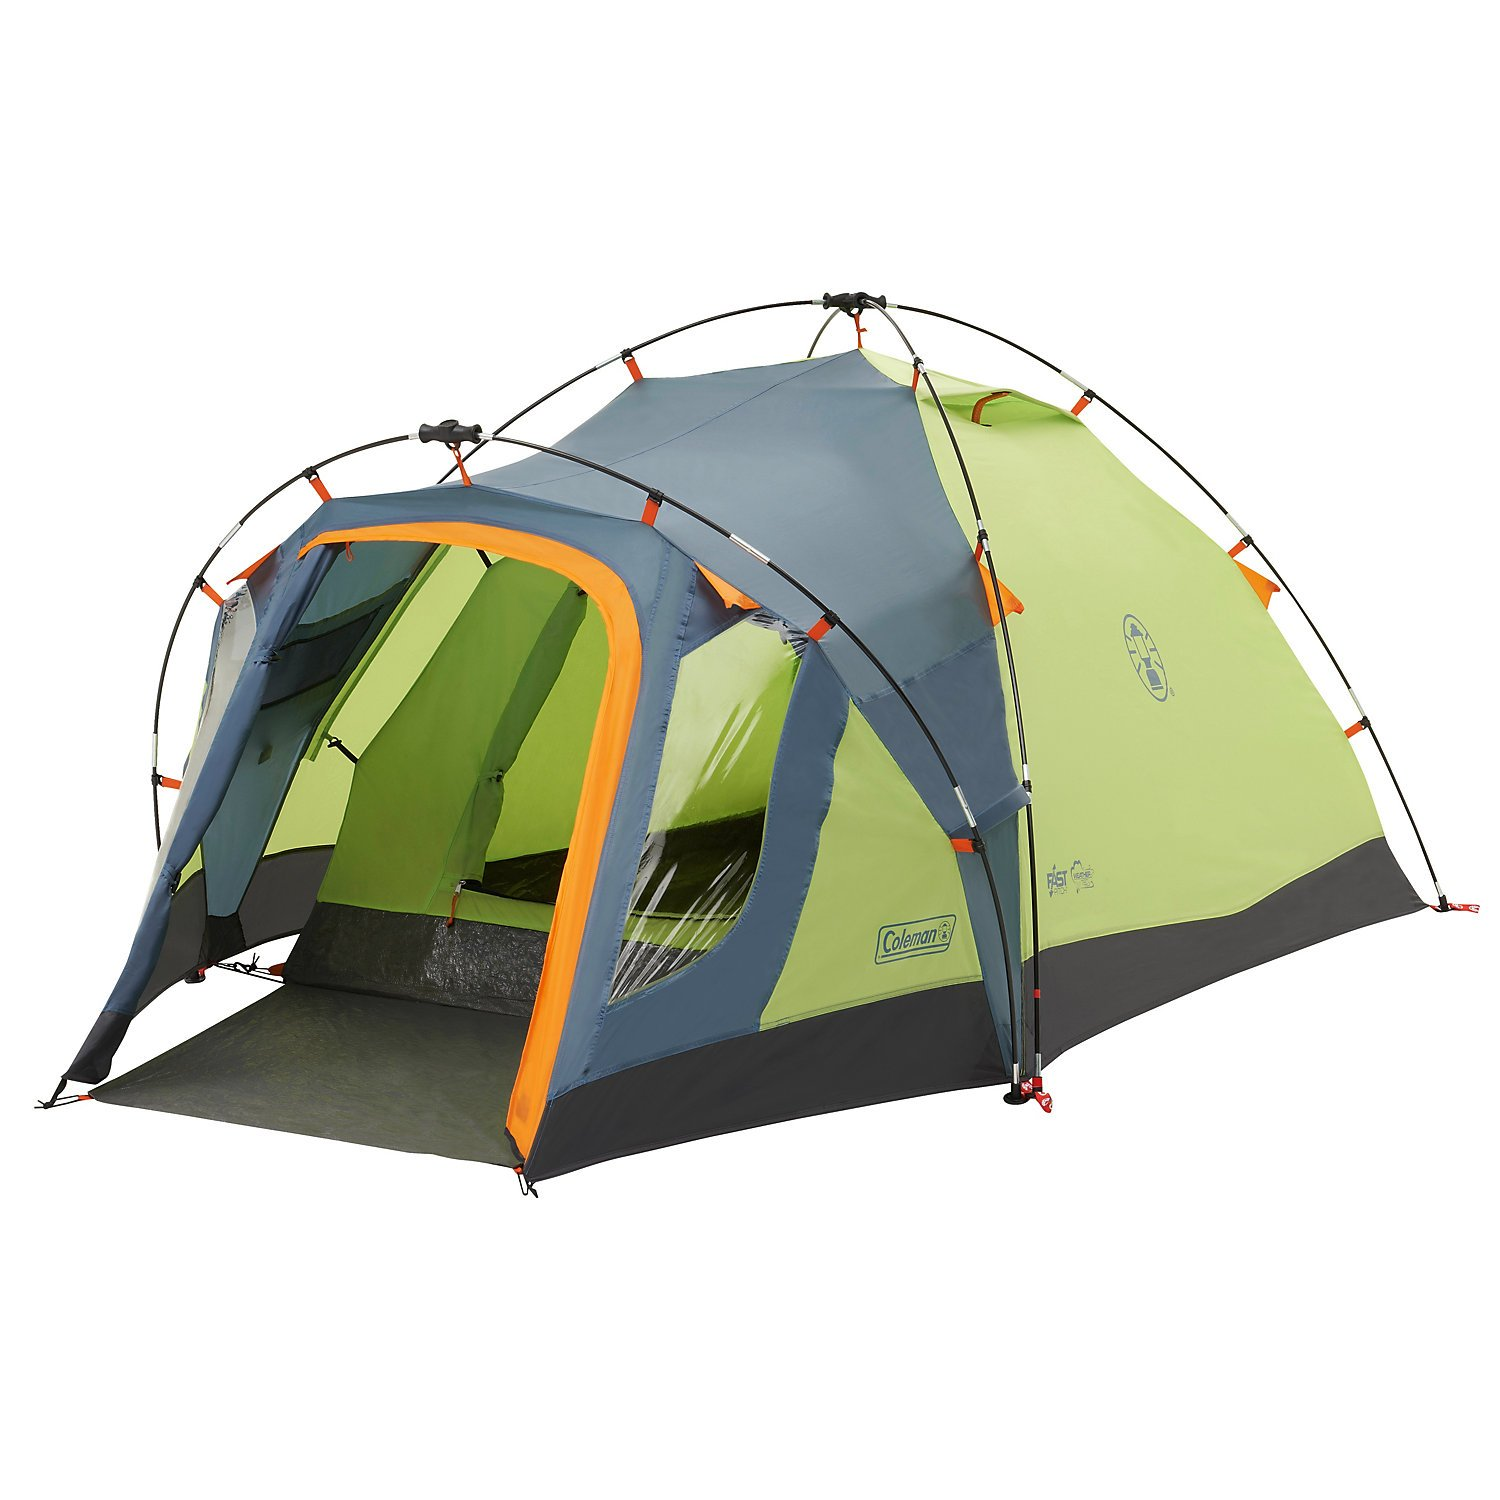 Coleman Drake Unisex Outdoor Dome Tent available in Blue/Green - 2 Persons Amazon.co.uk Sports u0026 Outdoors  sc 1 st  Amazon UK & Coleman Drake Unisex Outdoor Dome Tent available in Blue/Green - 2 ...